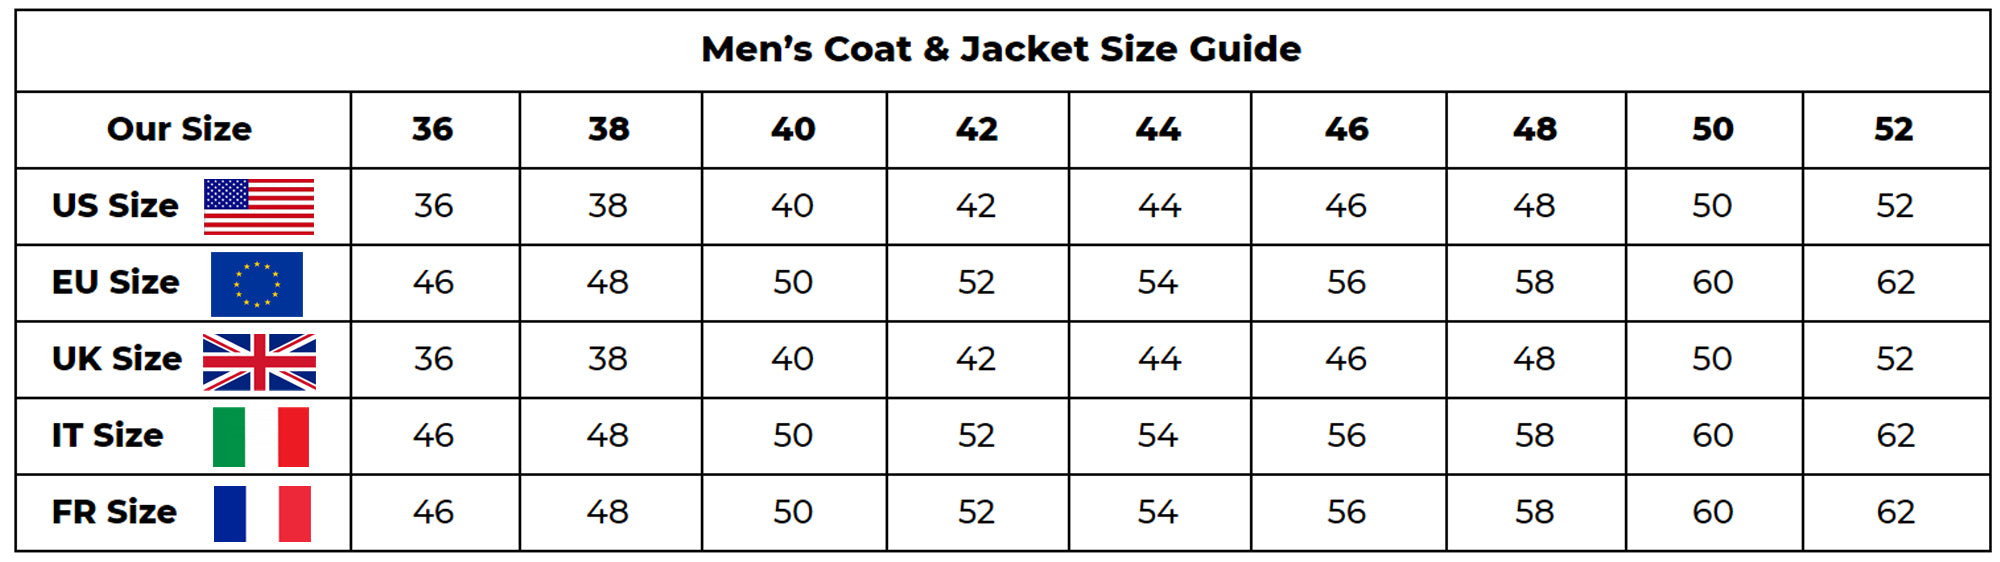 Mens Coats & Jackets Size Guide | Triona Design